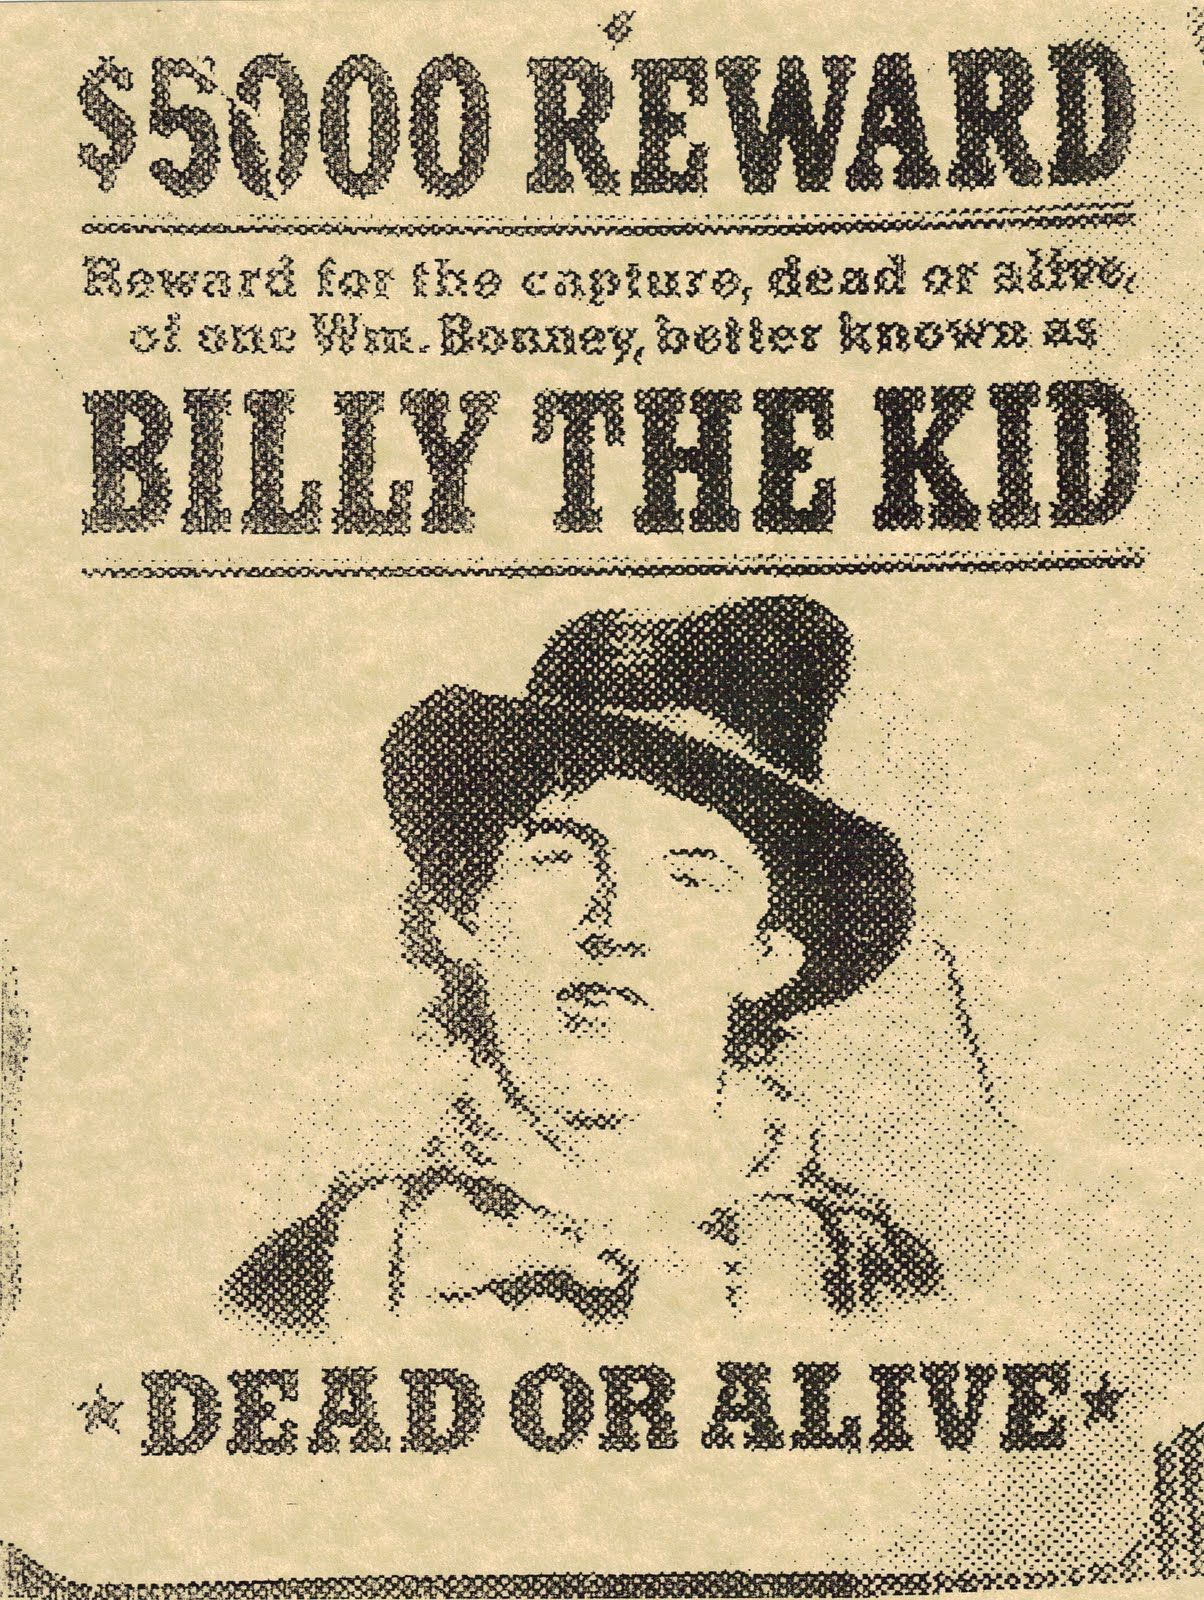 Billy The Kid Wanted Poster Cops and Crooks Pinterest – Real Wanted Posters